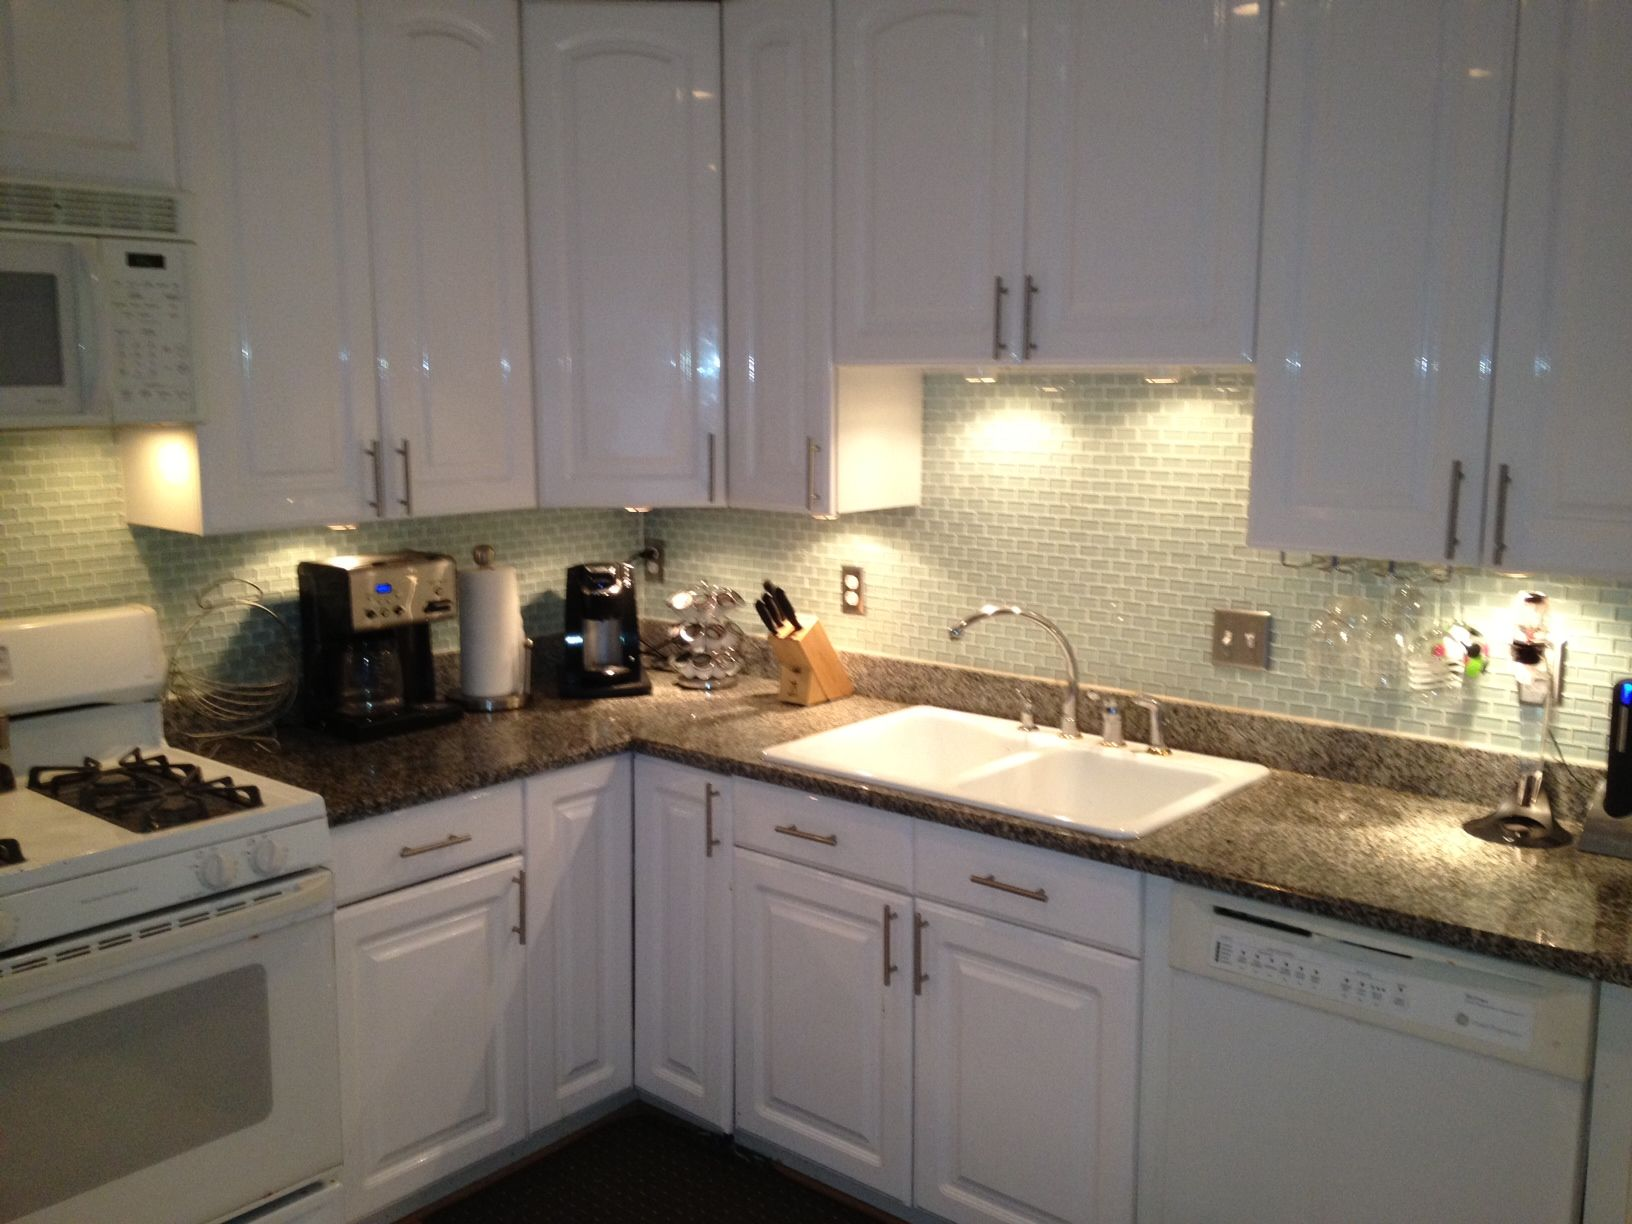 Kitchen Backsplash Arctic Ice And Under Counter Lighting From Home Depot Goes Well With White Cabinets And G Home Home Interior Design Under Counter Lighting